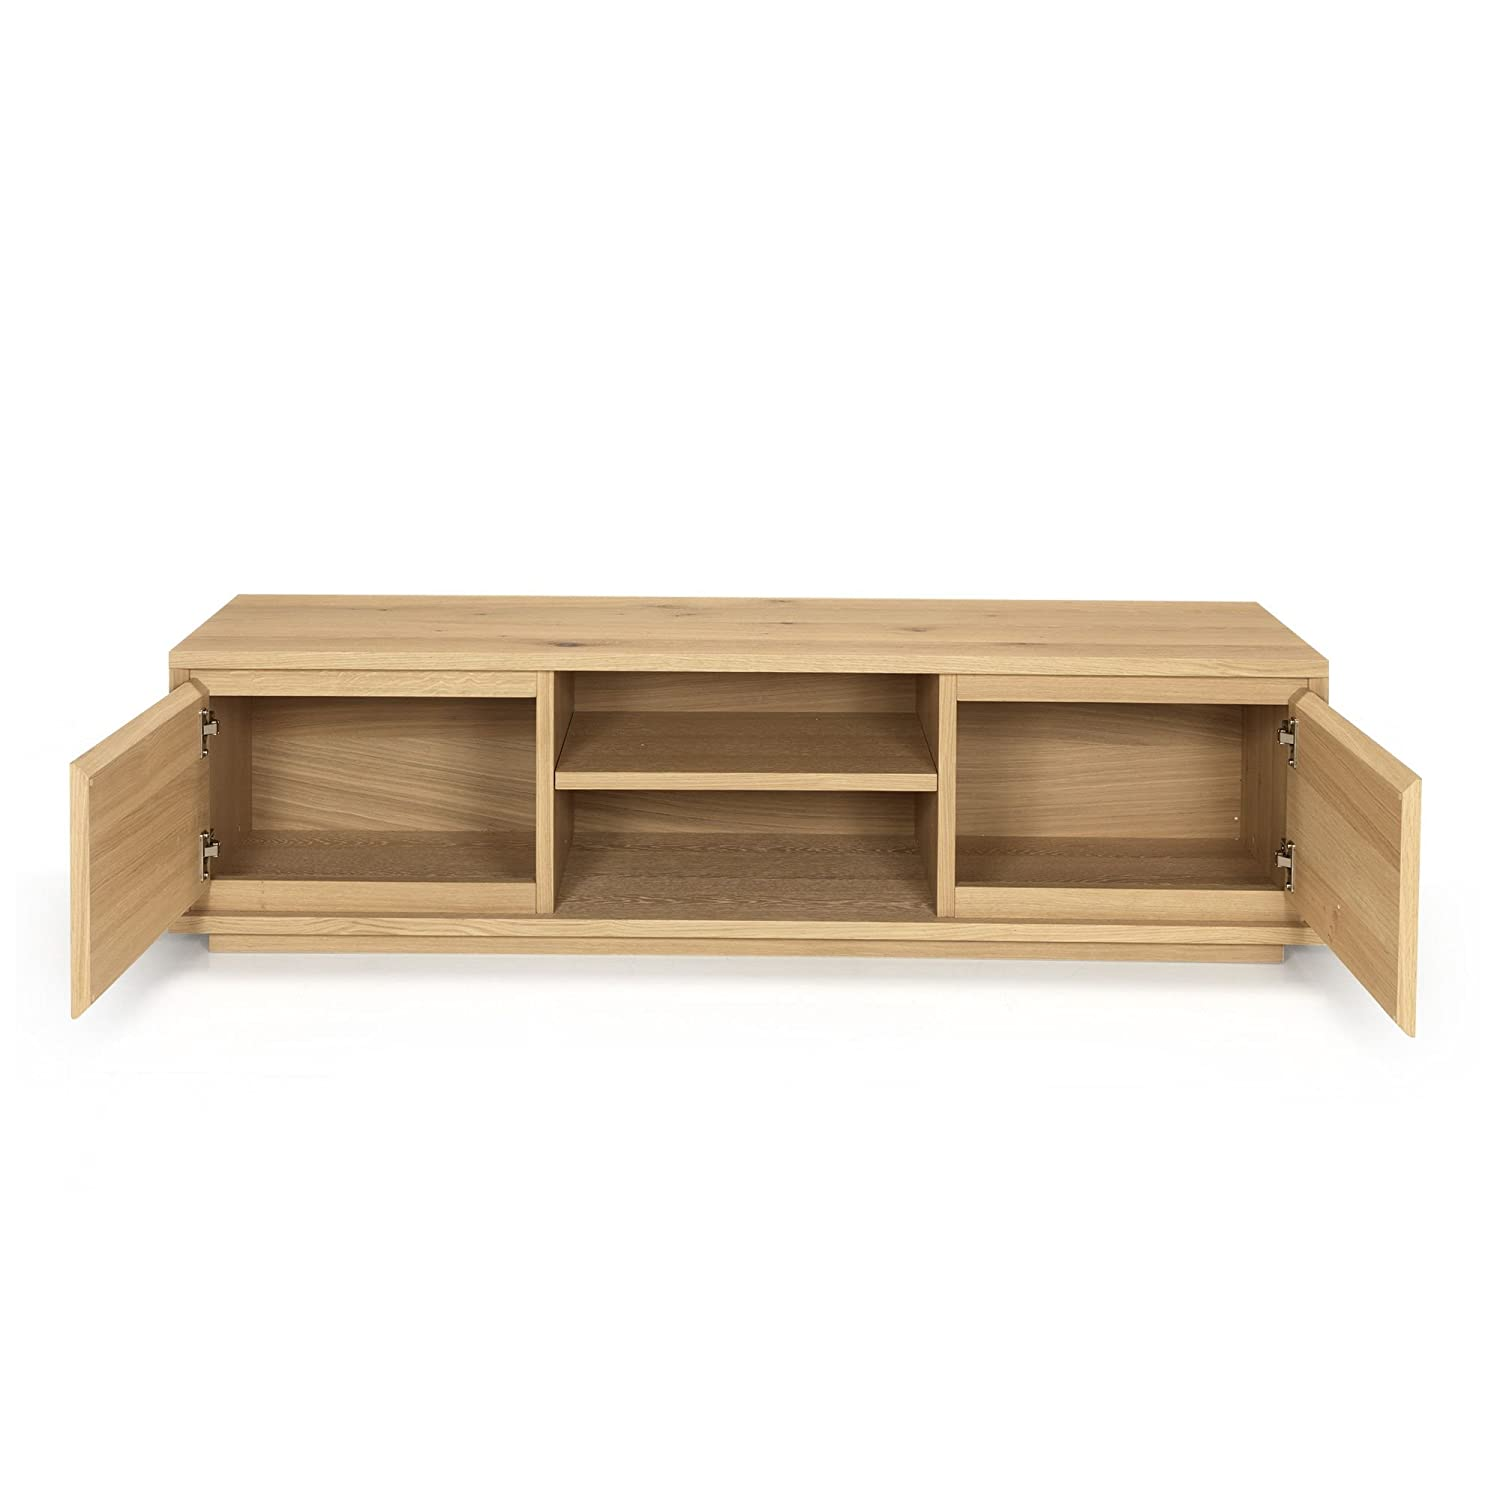 Stockholm Meuble Tv Design Scandinave Naturel Alinea 150 0x40  # Alinea Meuble Tv Bois